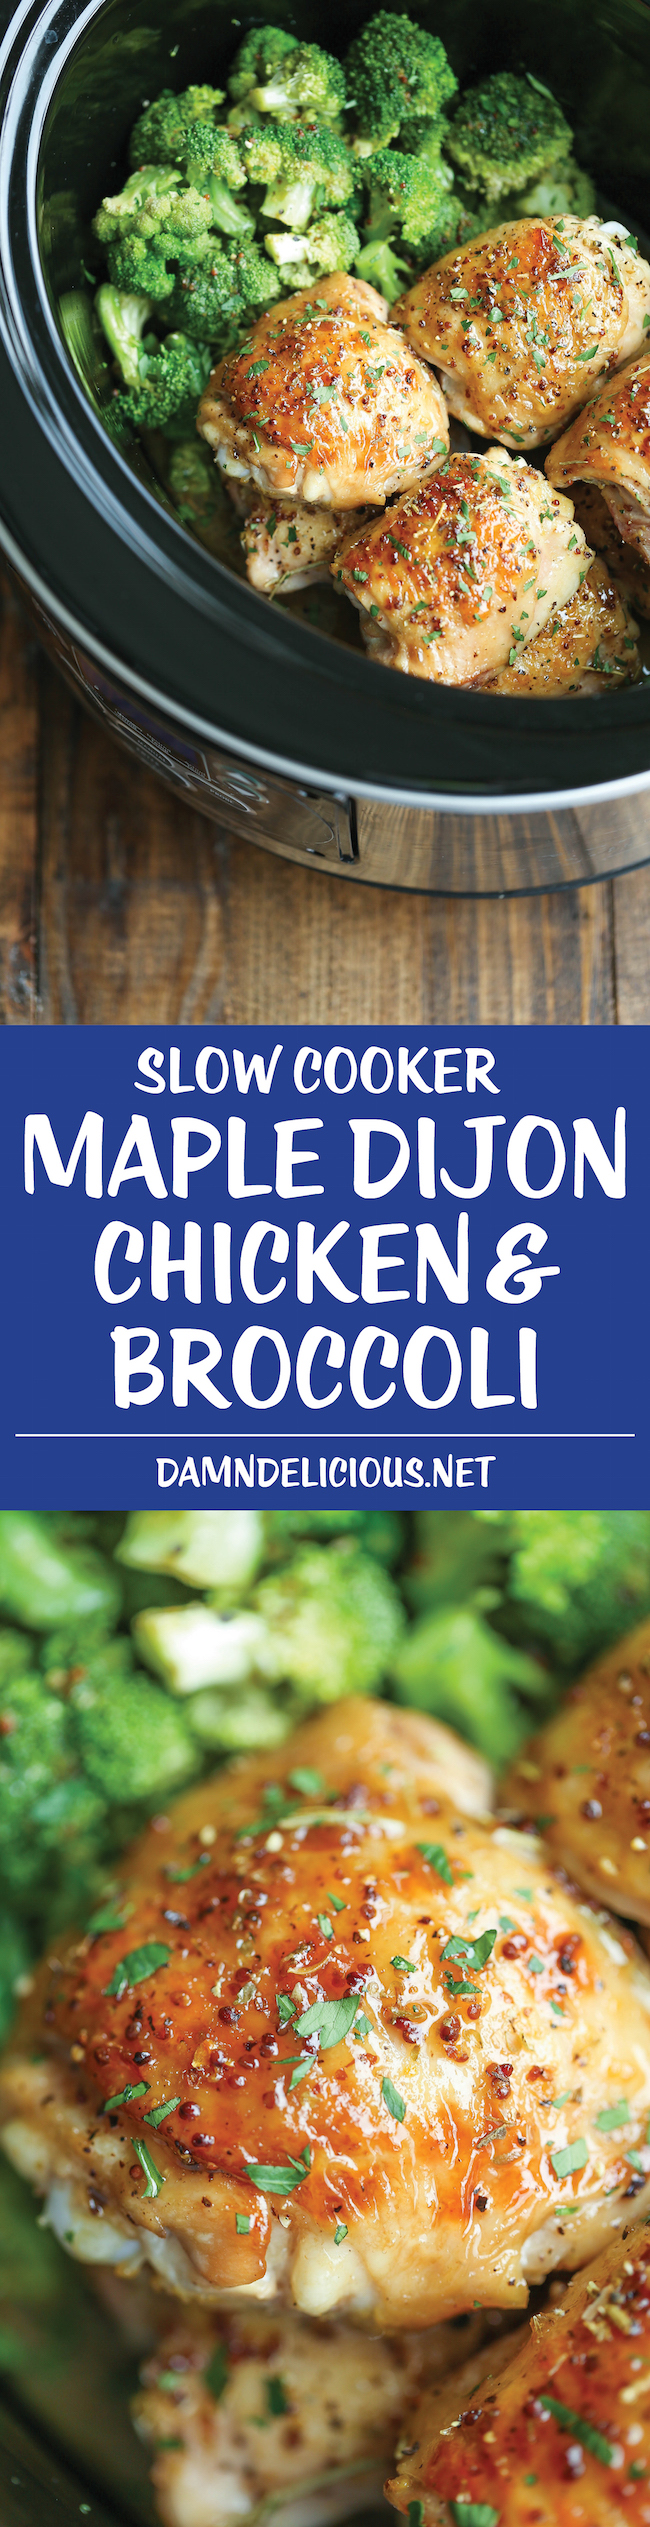 Slow Cooker Maple Dijon Chicken and Broccoli - Sweet, tangy and packed with so much flavor, made right in your crockpot! It just doesn't get any easier!